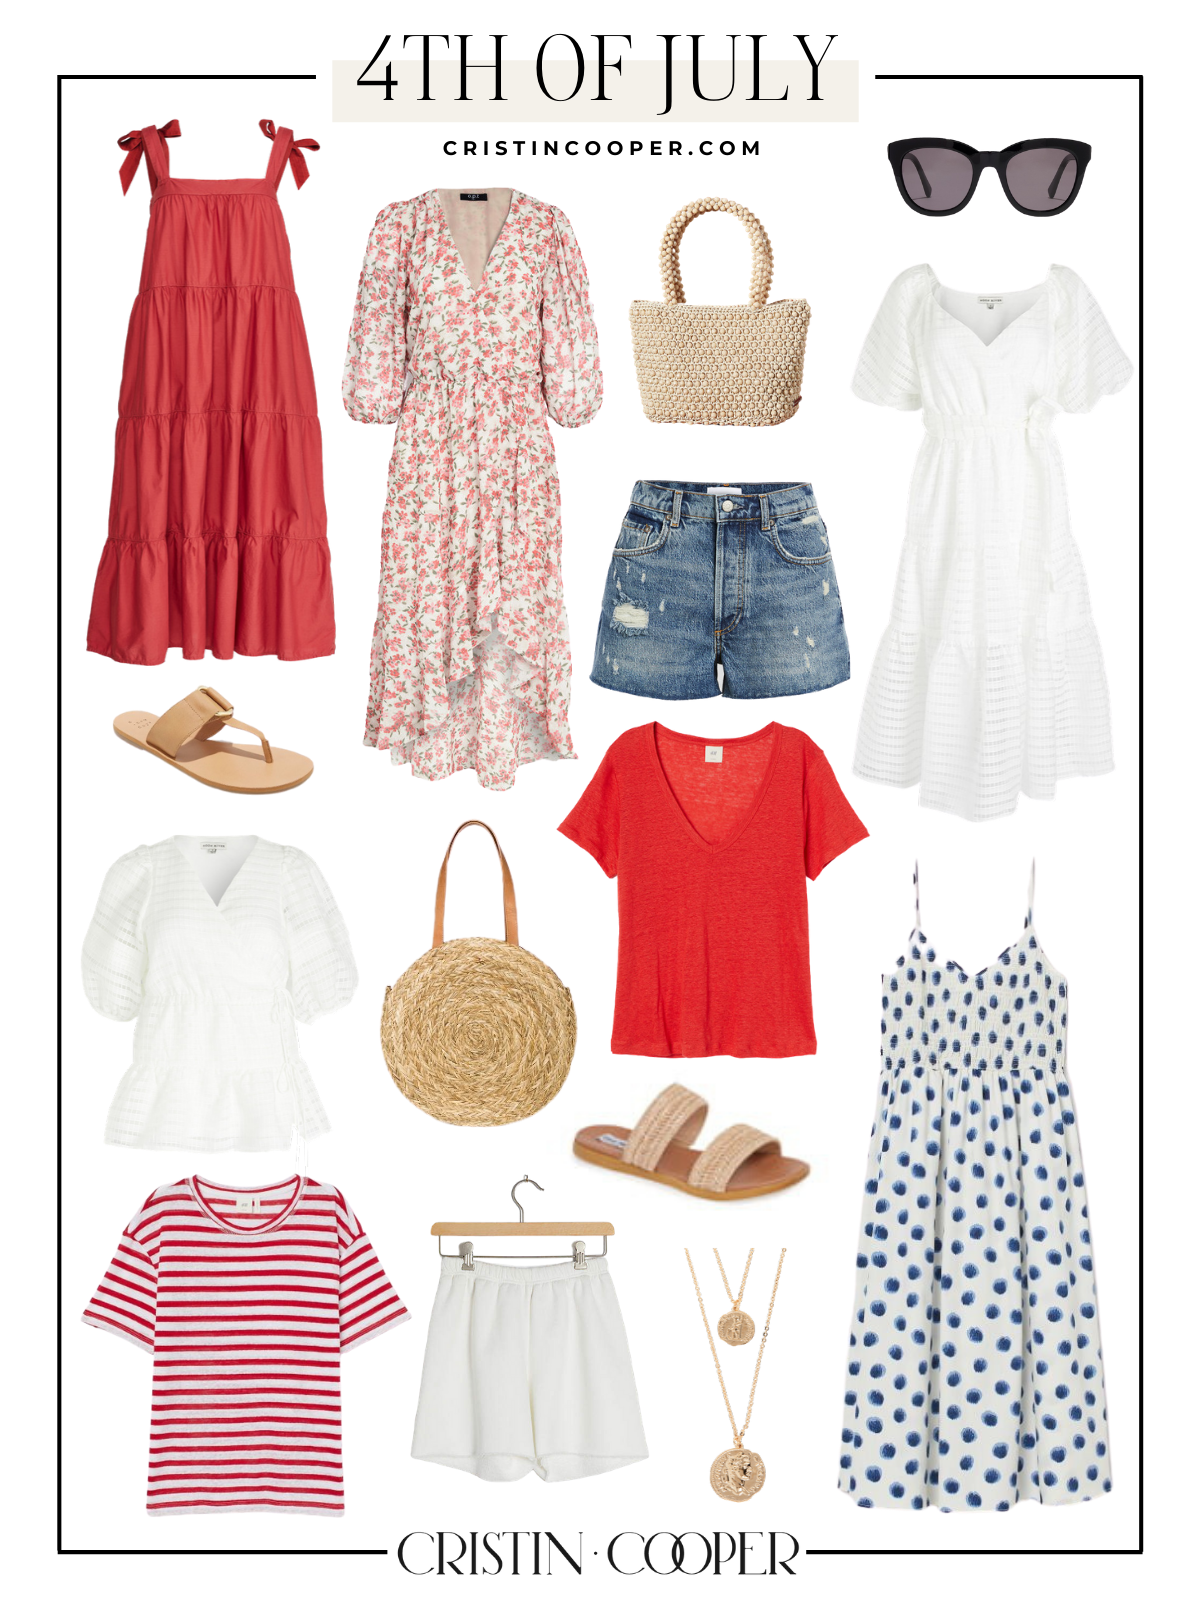 4th of July outfit inspiration, featuring women's fashion picks in red, white and blue.